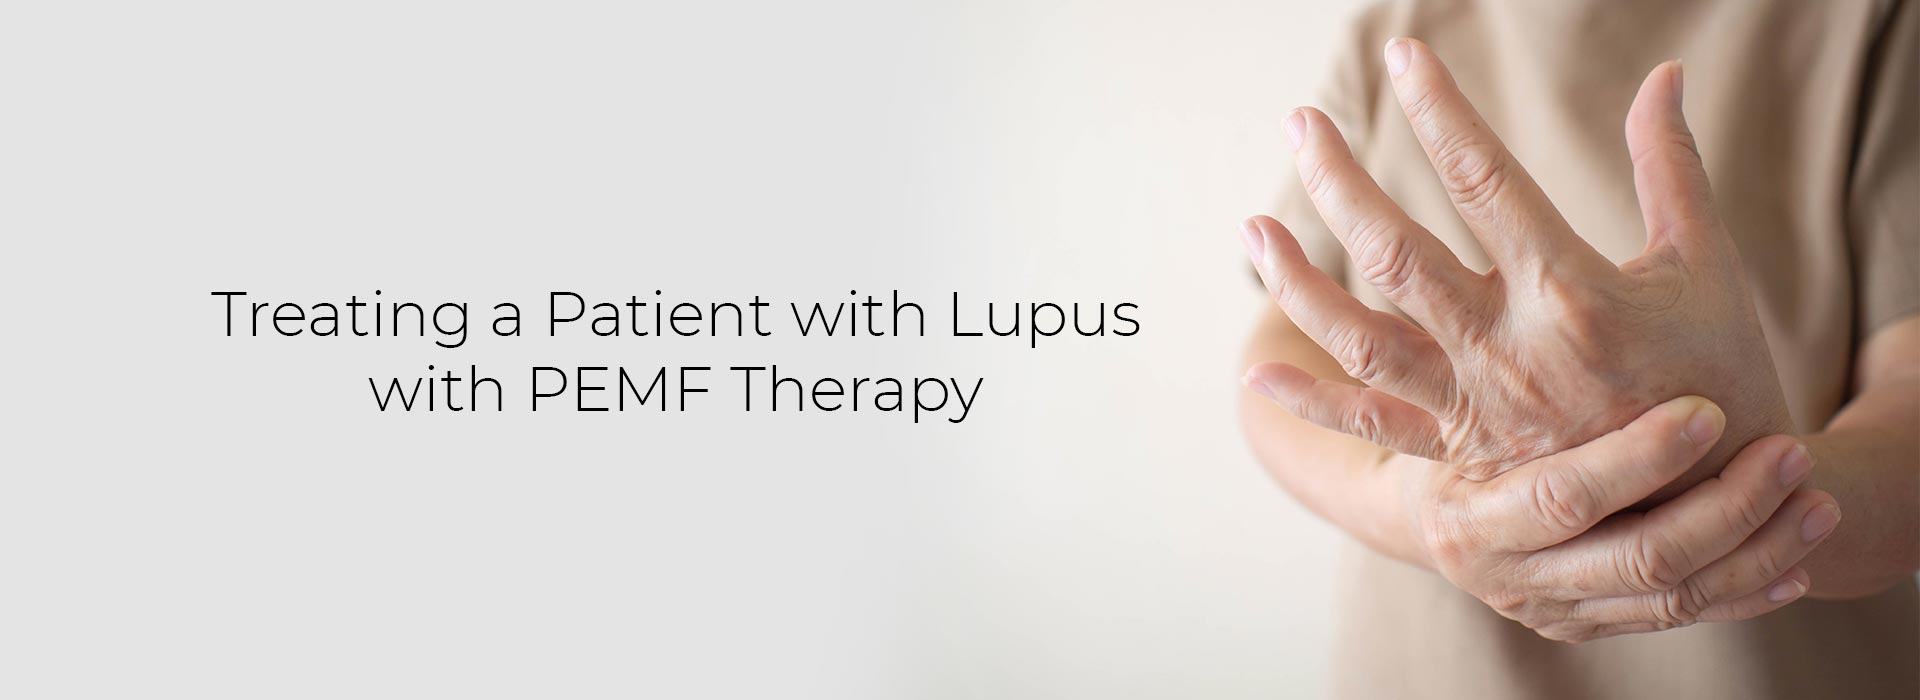 Treating a Patient with Lupus with PEMF Therapy